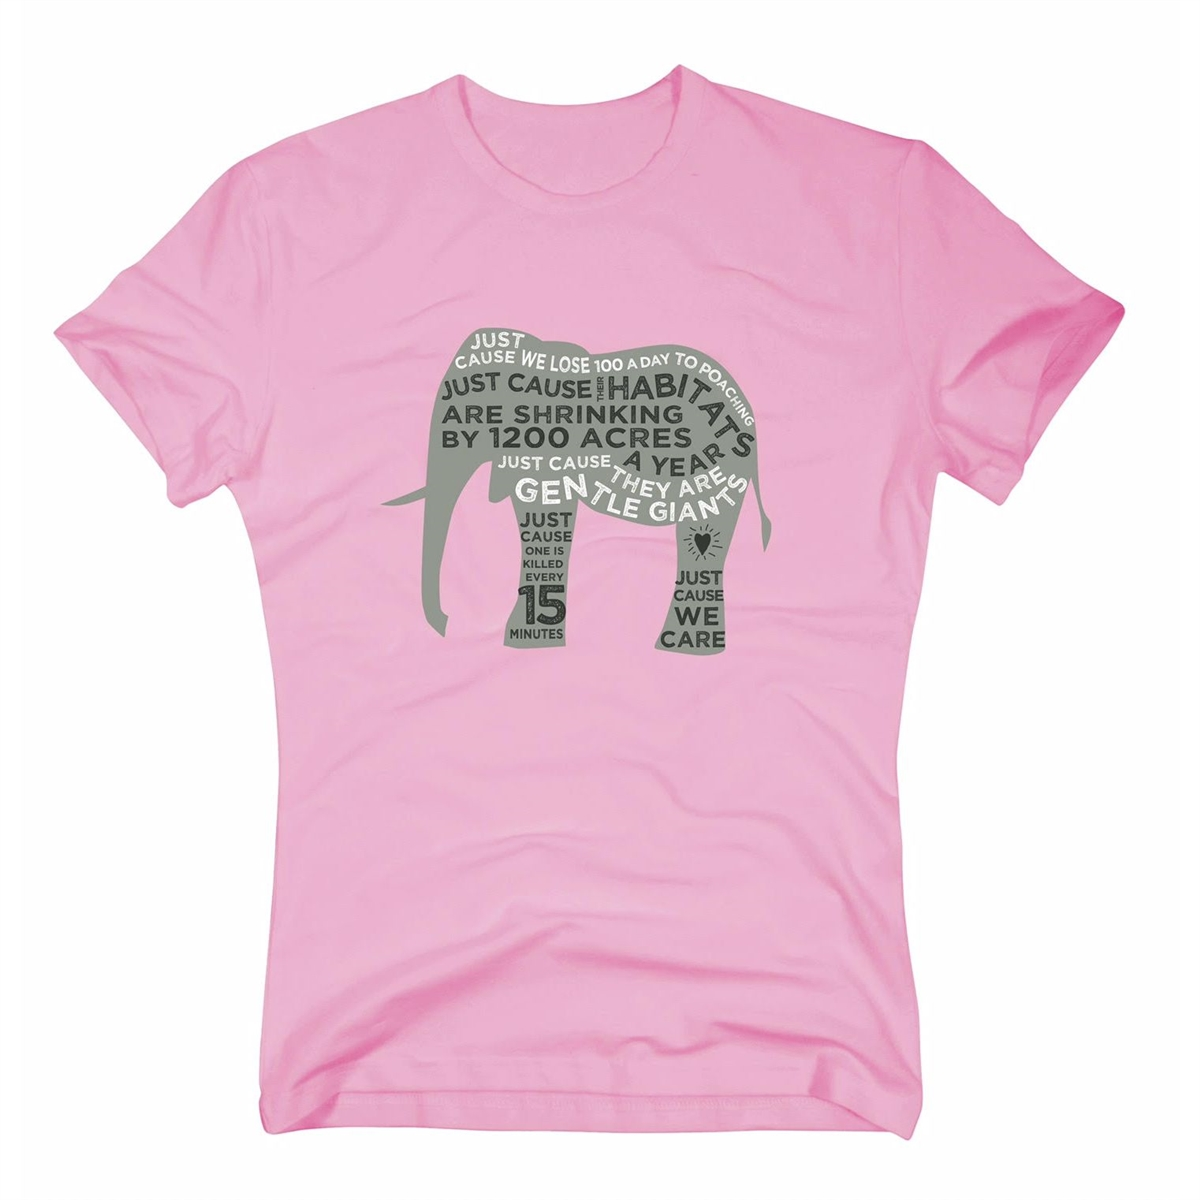 Pink elephant clothing store in philadelphia